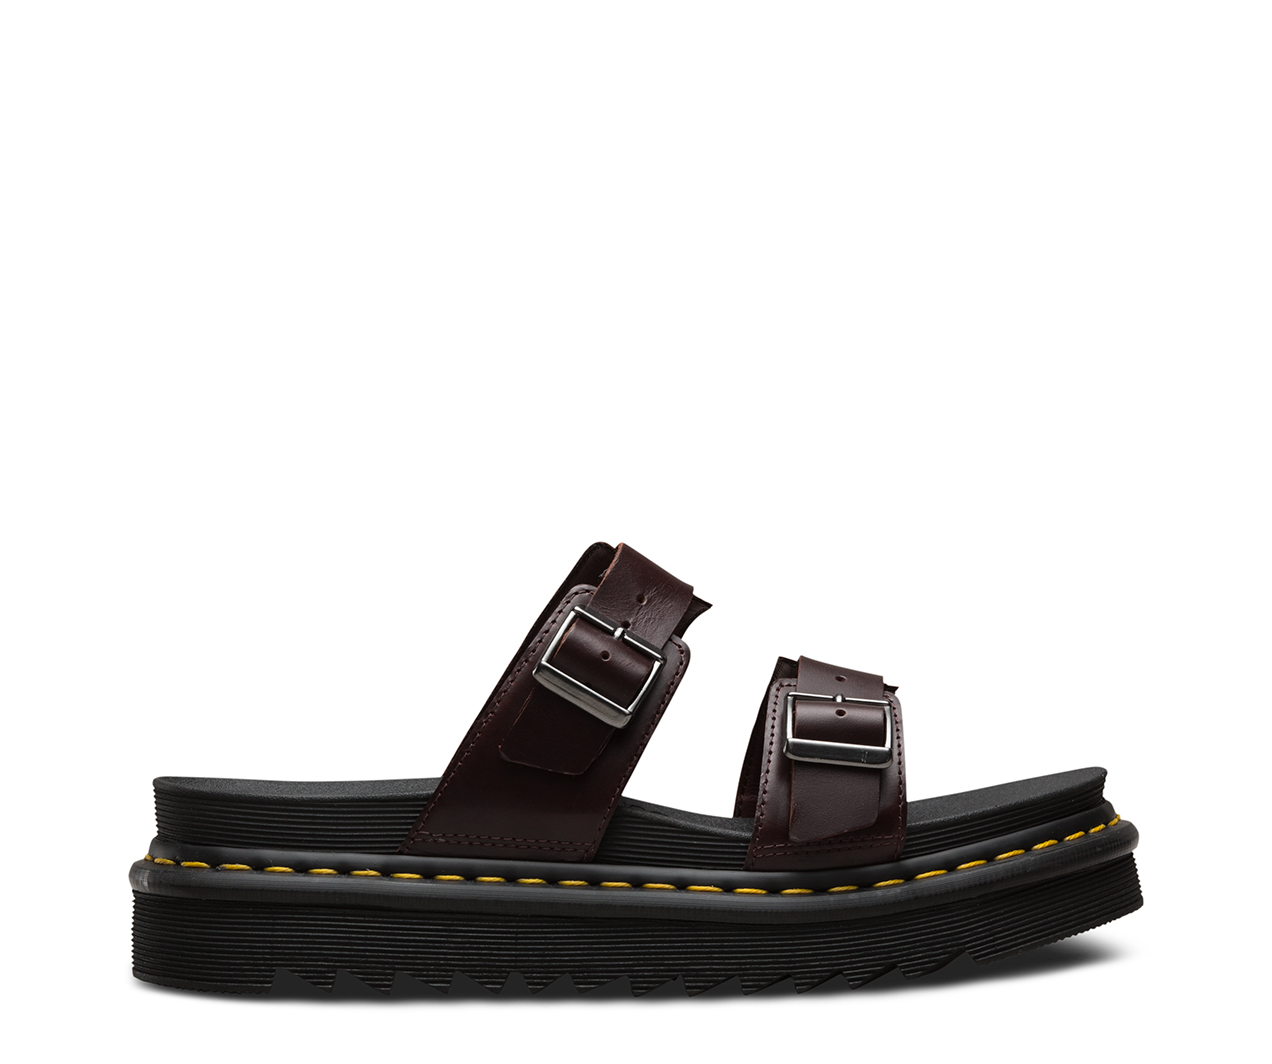 Dr. Martens Men's Myles Brando Leather Double Strap Sandals - - UK 9 1LvD4V